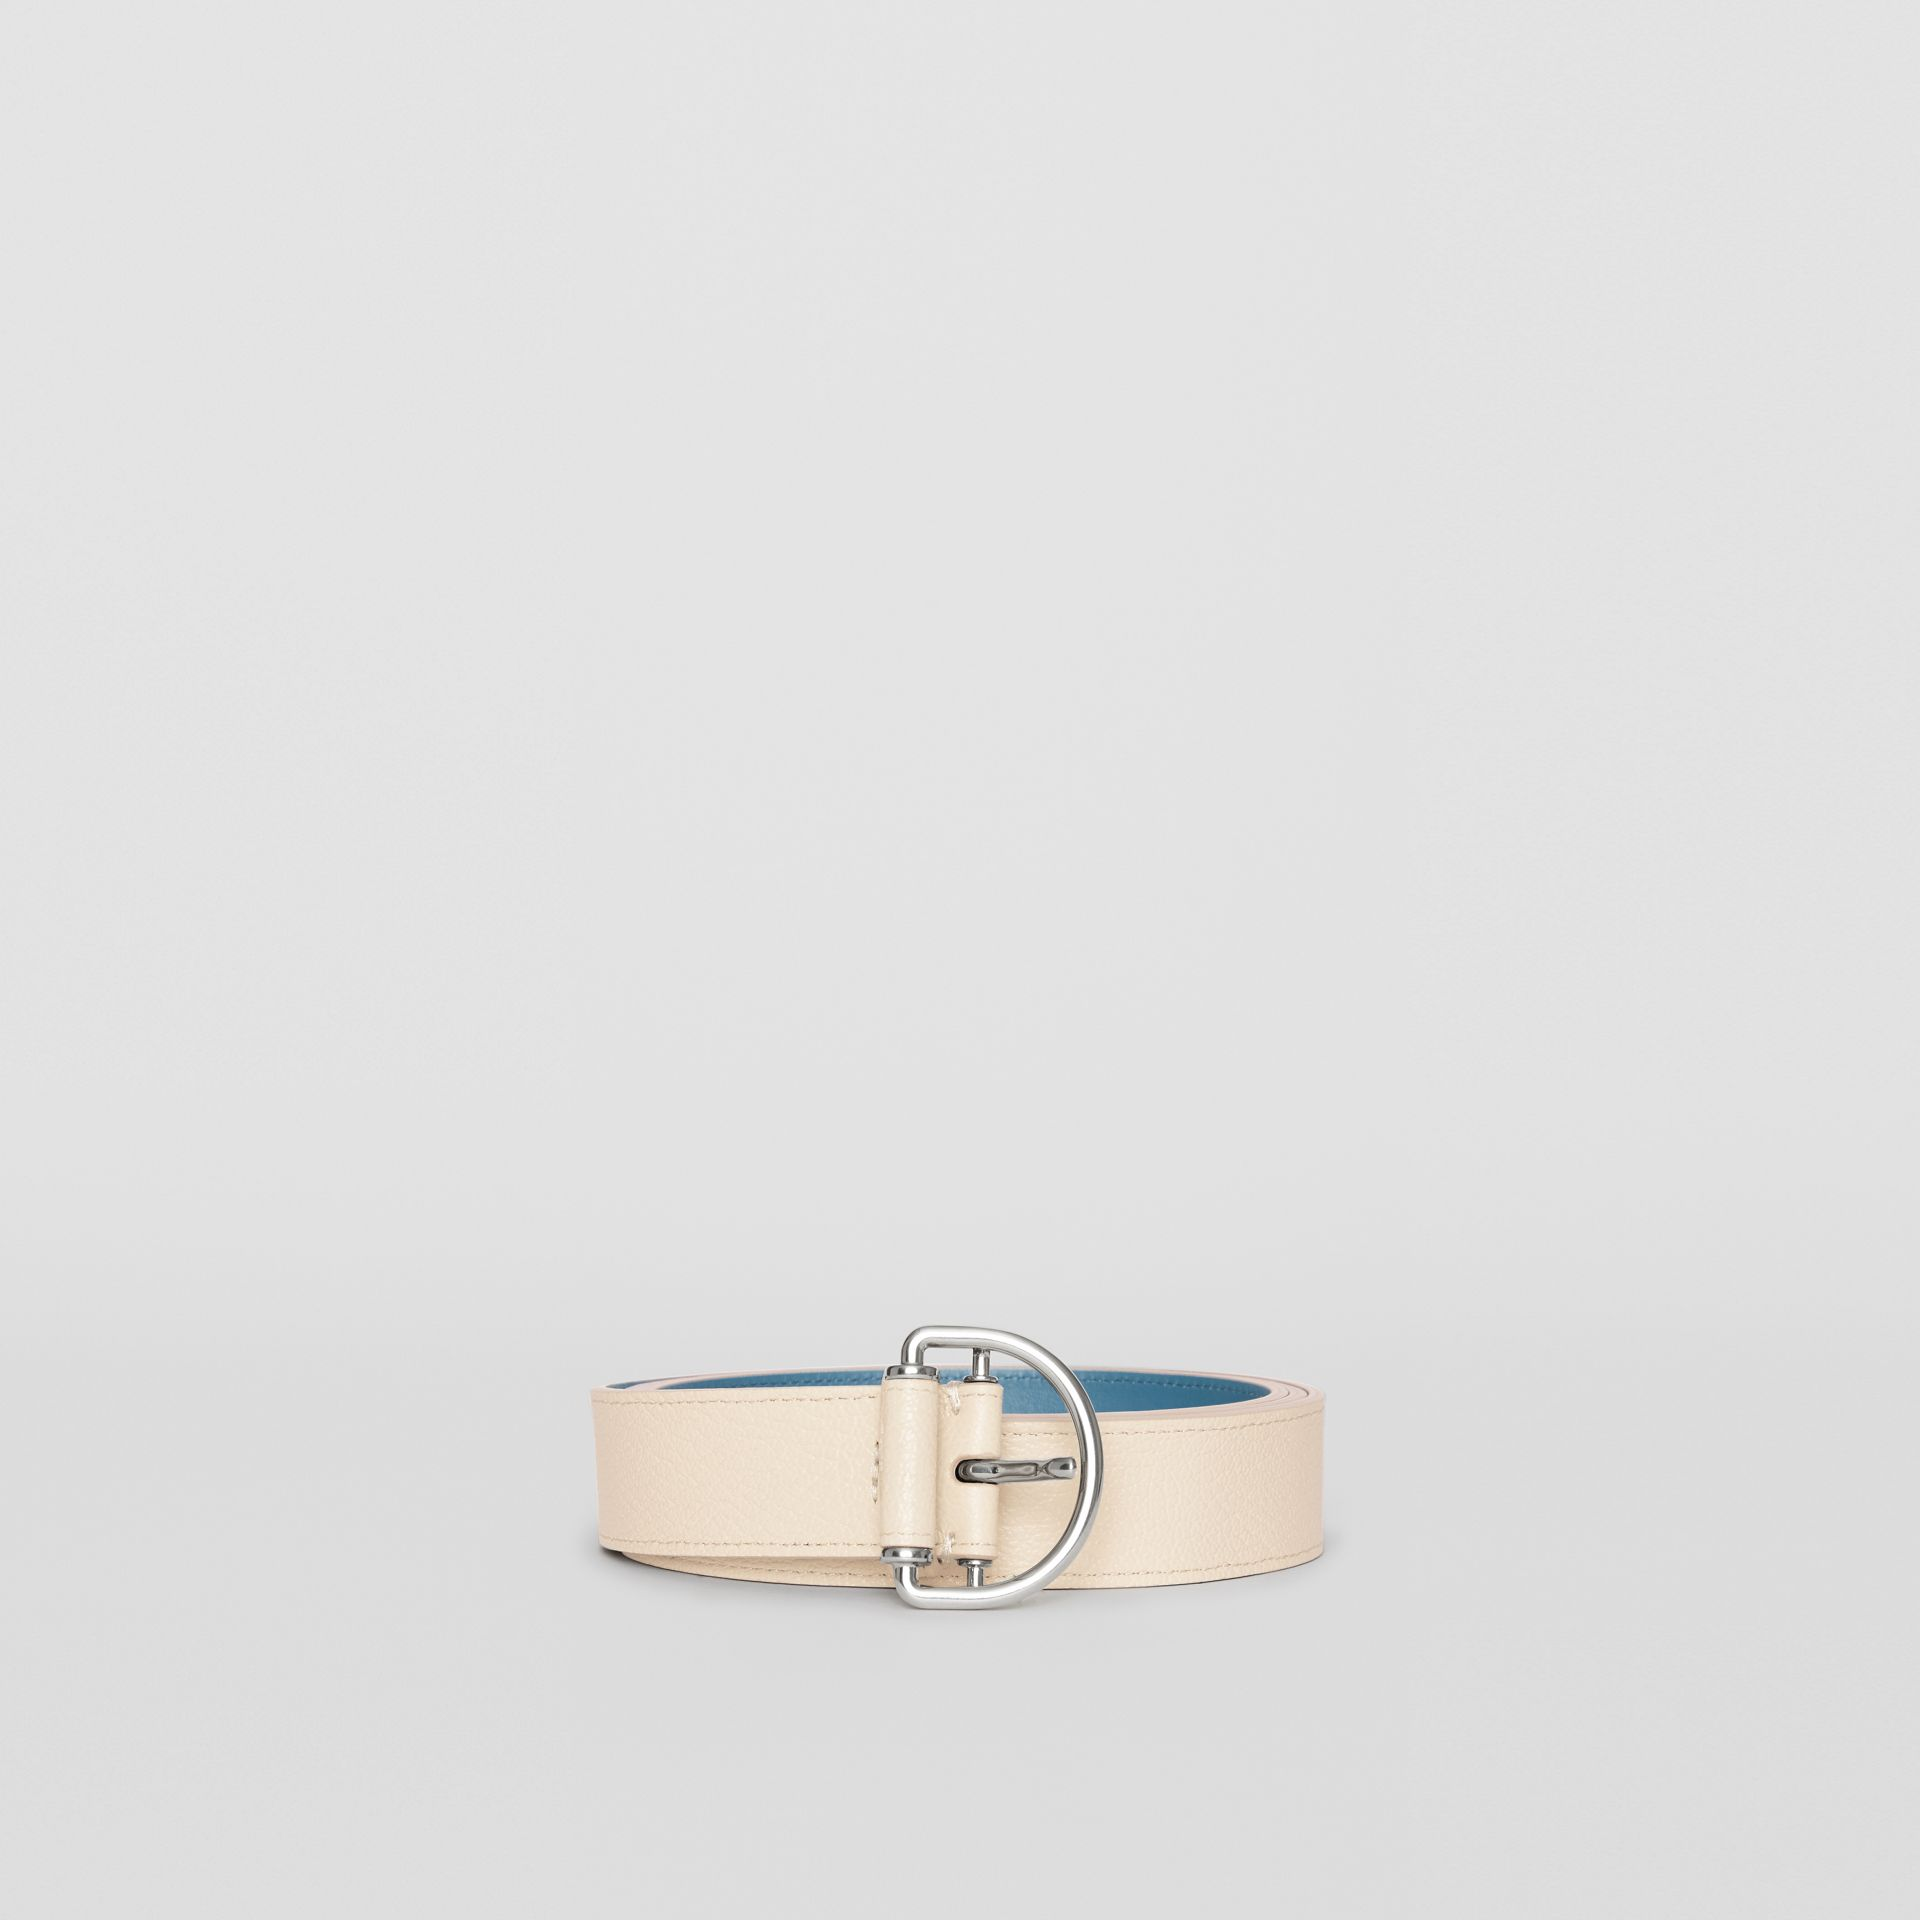 Grainy Leather D-ring Belt in Stone/pewter Blue - Women | Burberry United States - gallery image 3